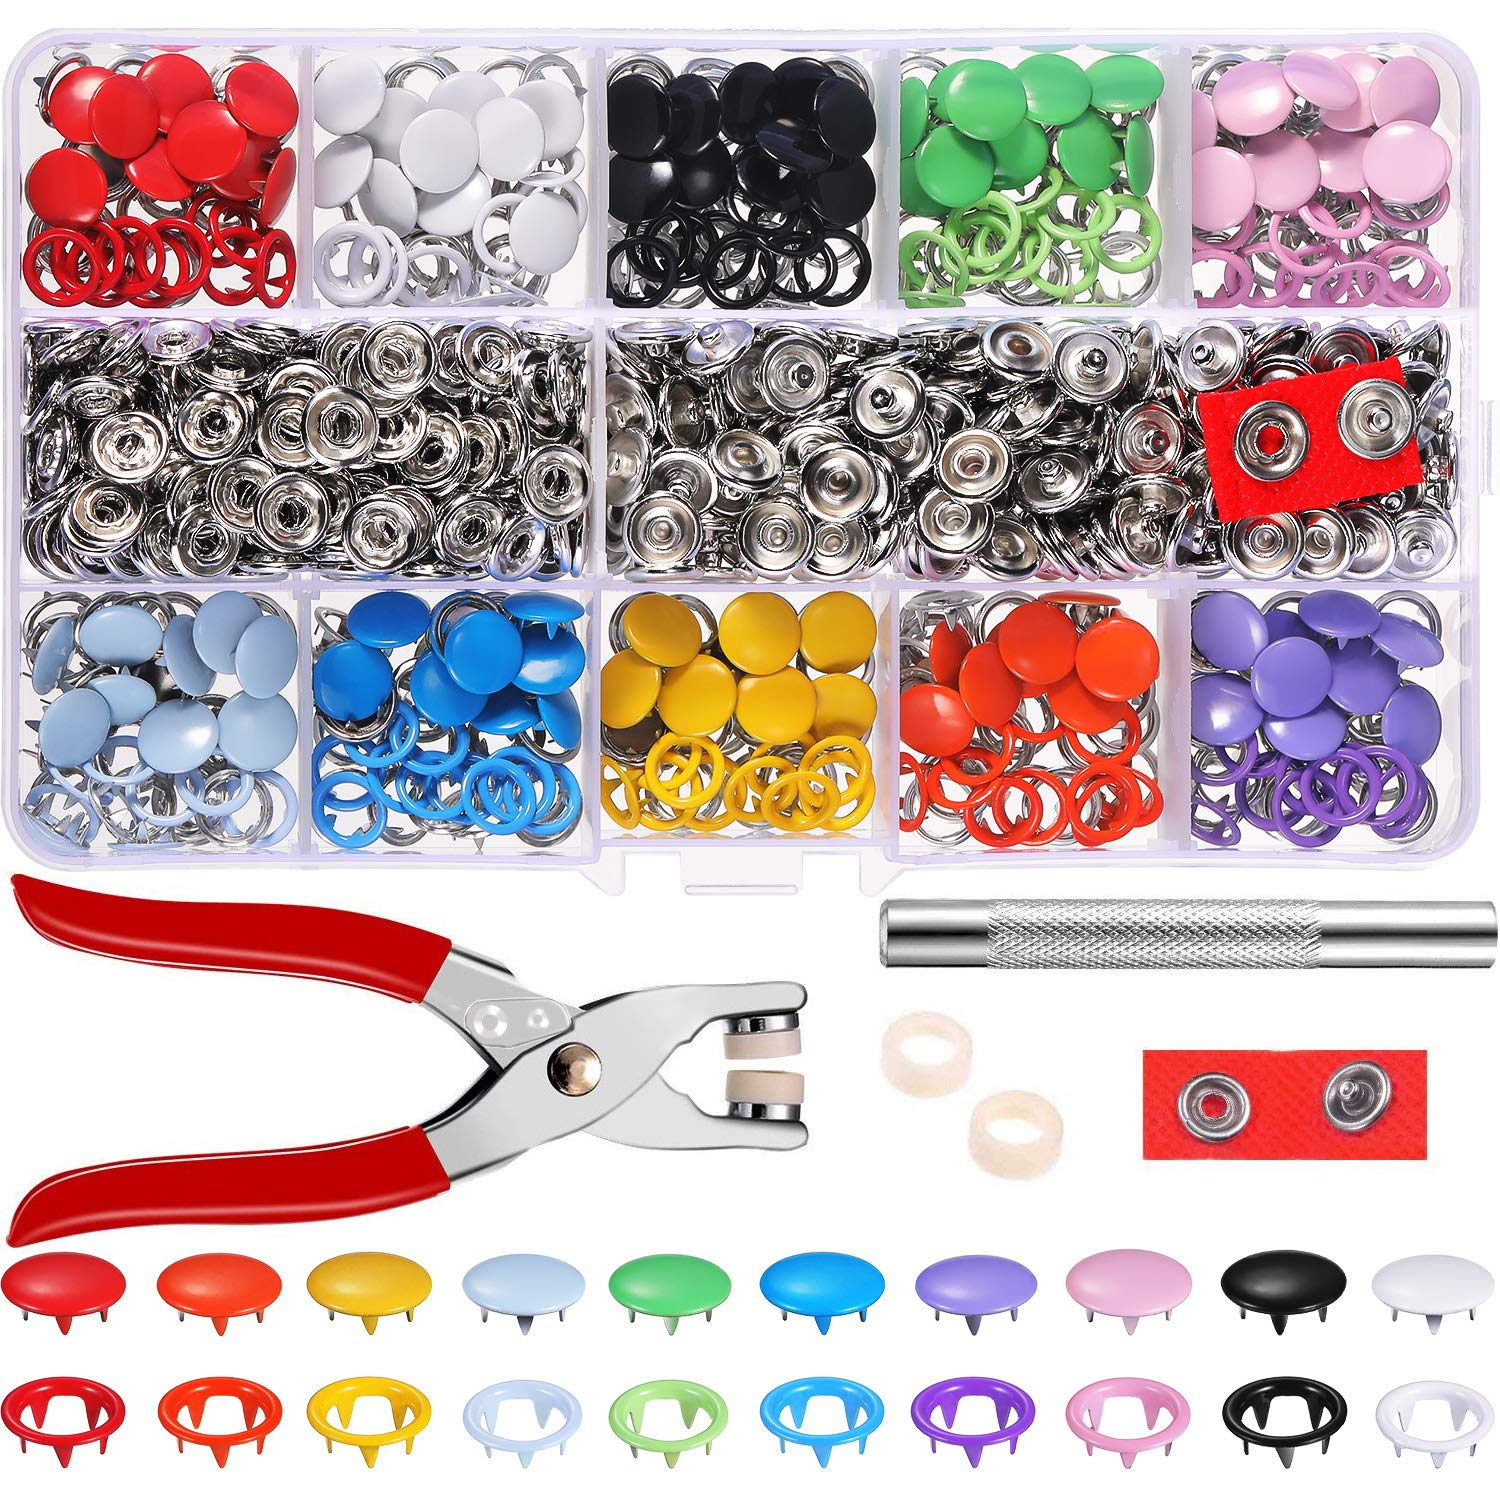 Jovitec 200 Set Hollow Solid Snap Fasteners Romper Snaps Pliers Craft Tool Prong Snaps Buckle Metal Ring Button Press Studs Sewing Craft 9.5 mm, 10 Colors by Jovitec